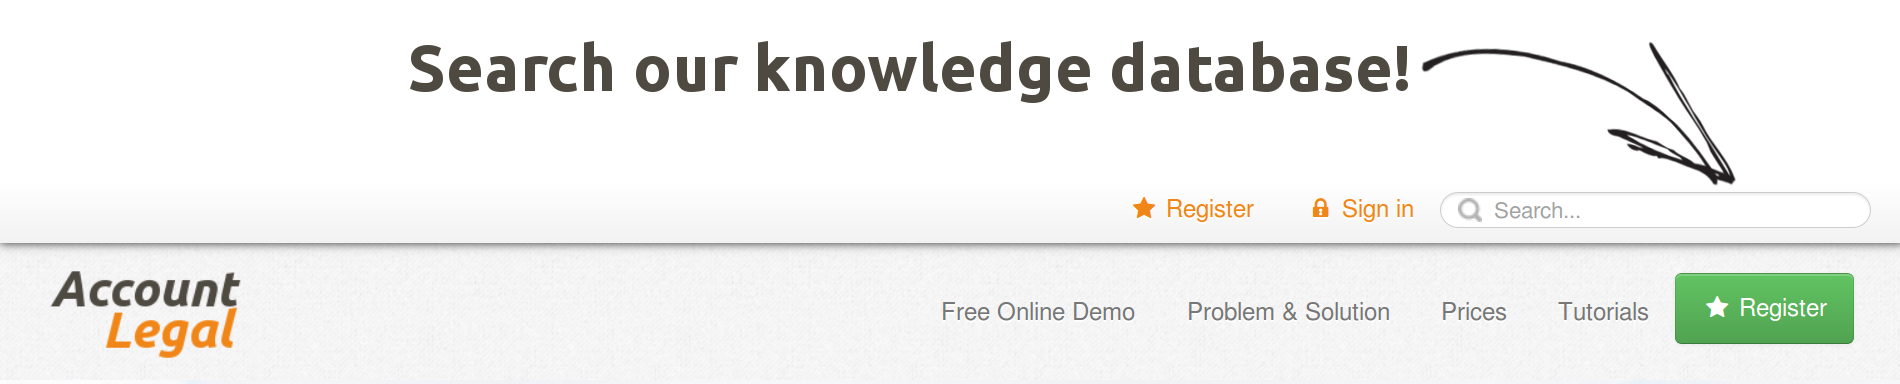 Search our knowledge database with ease! Find totorial on how to do just about anything!